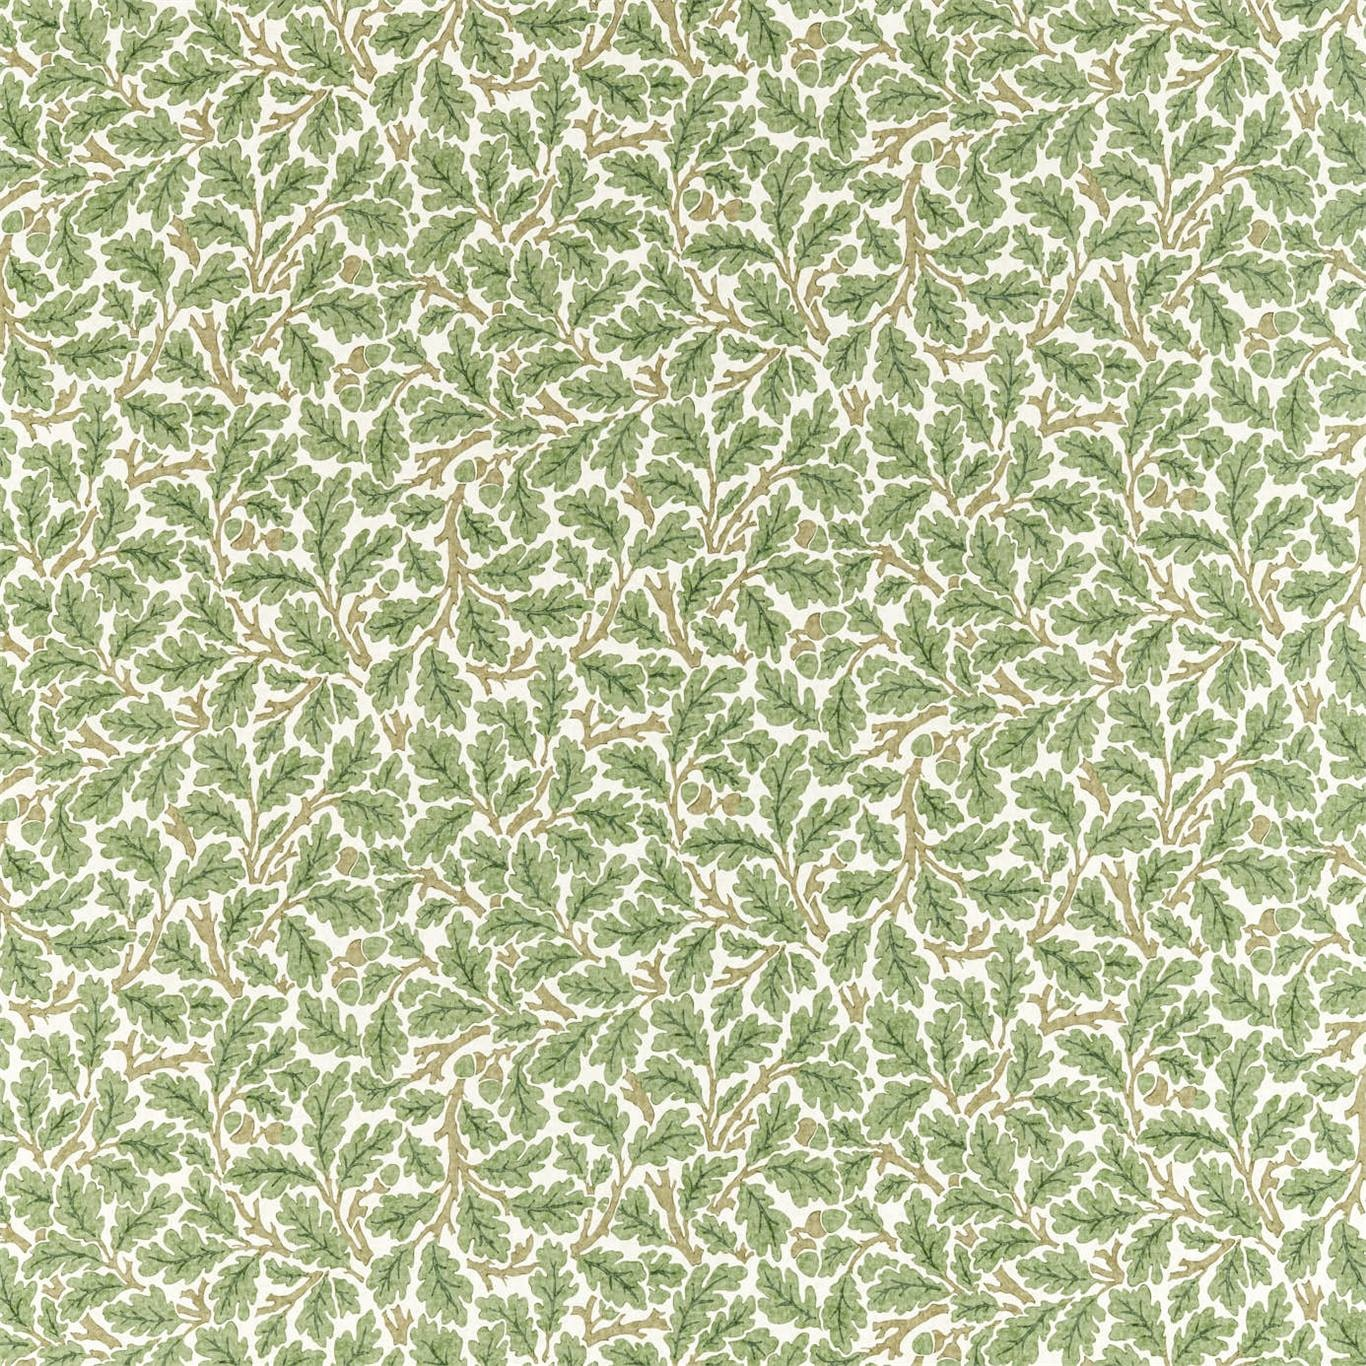 Image of Morris & Co Oak Forest/Cream Fabric 226606